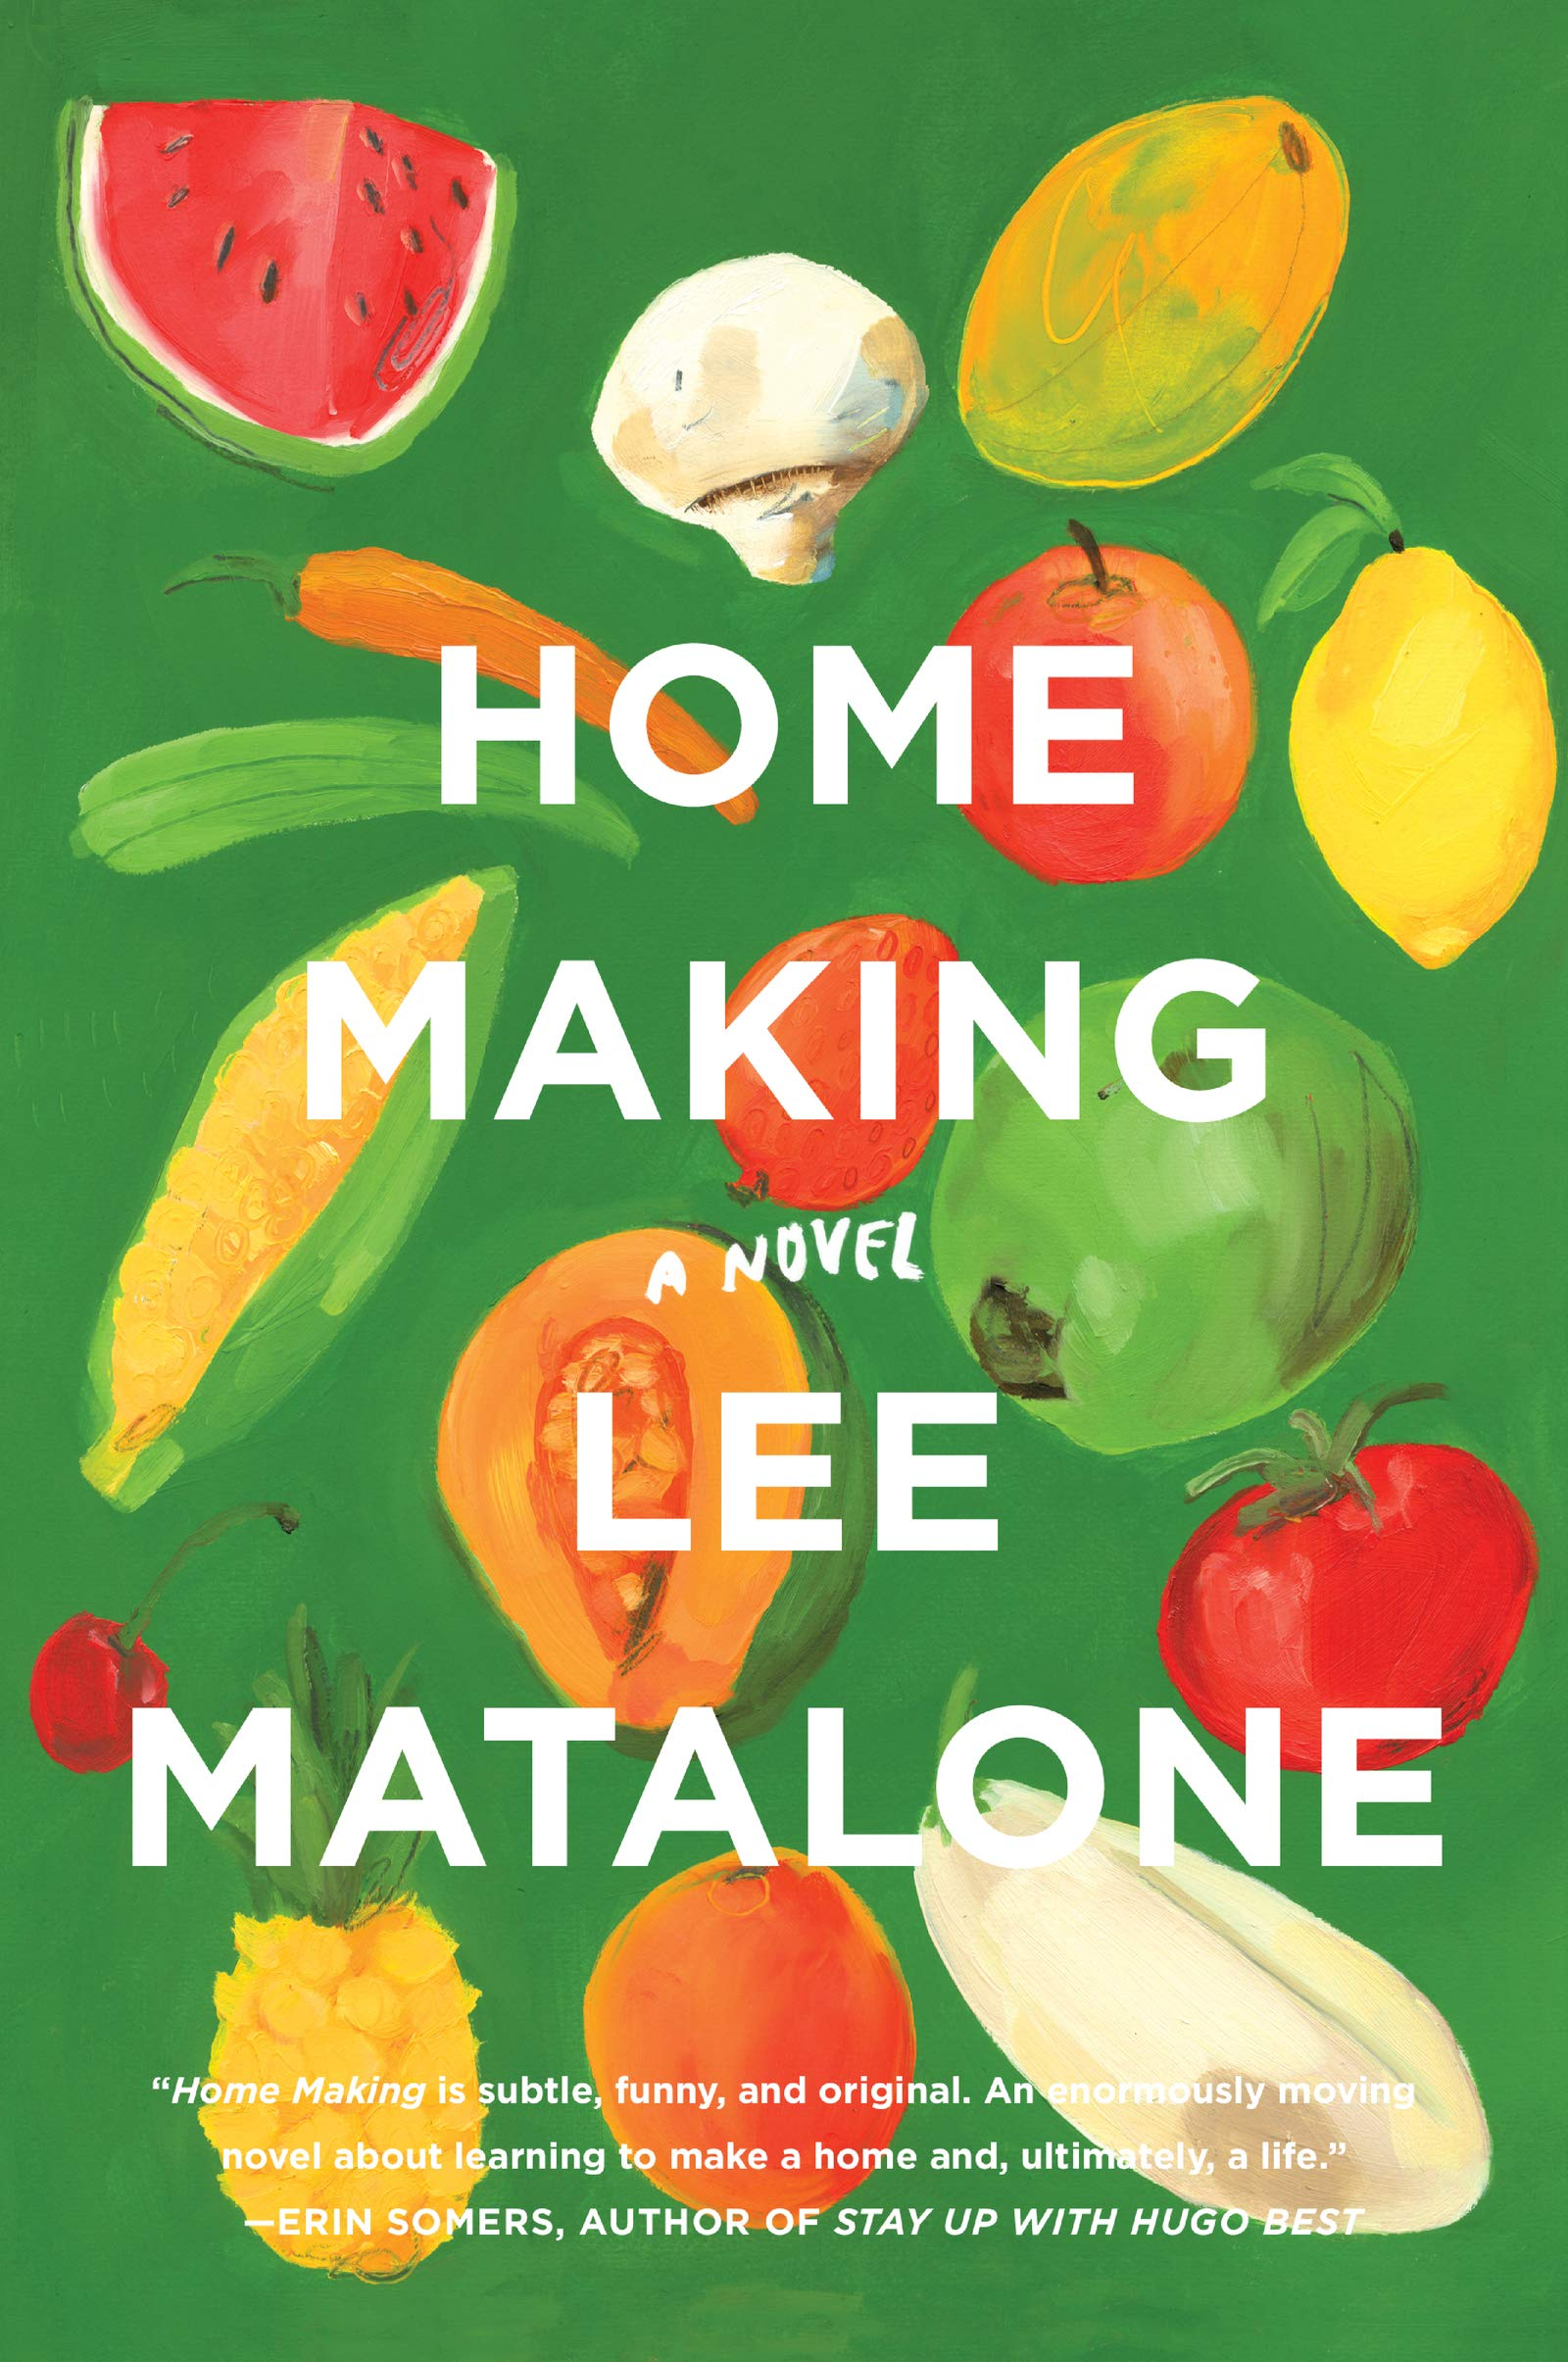 Book Launch: Home Making by Lee Matalone in conversation with Erin Somers